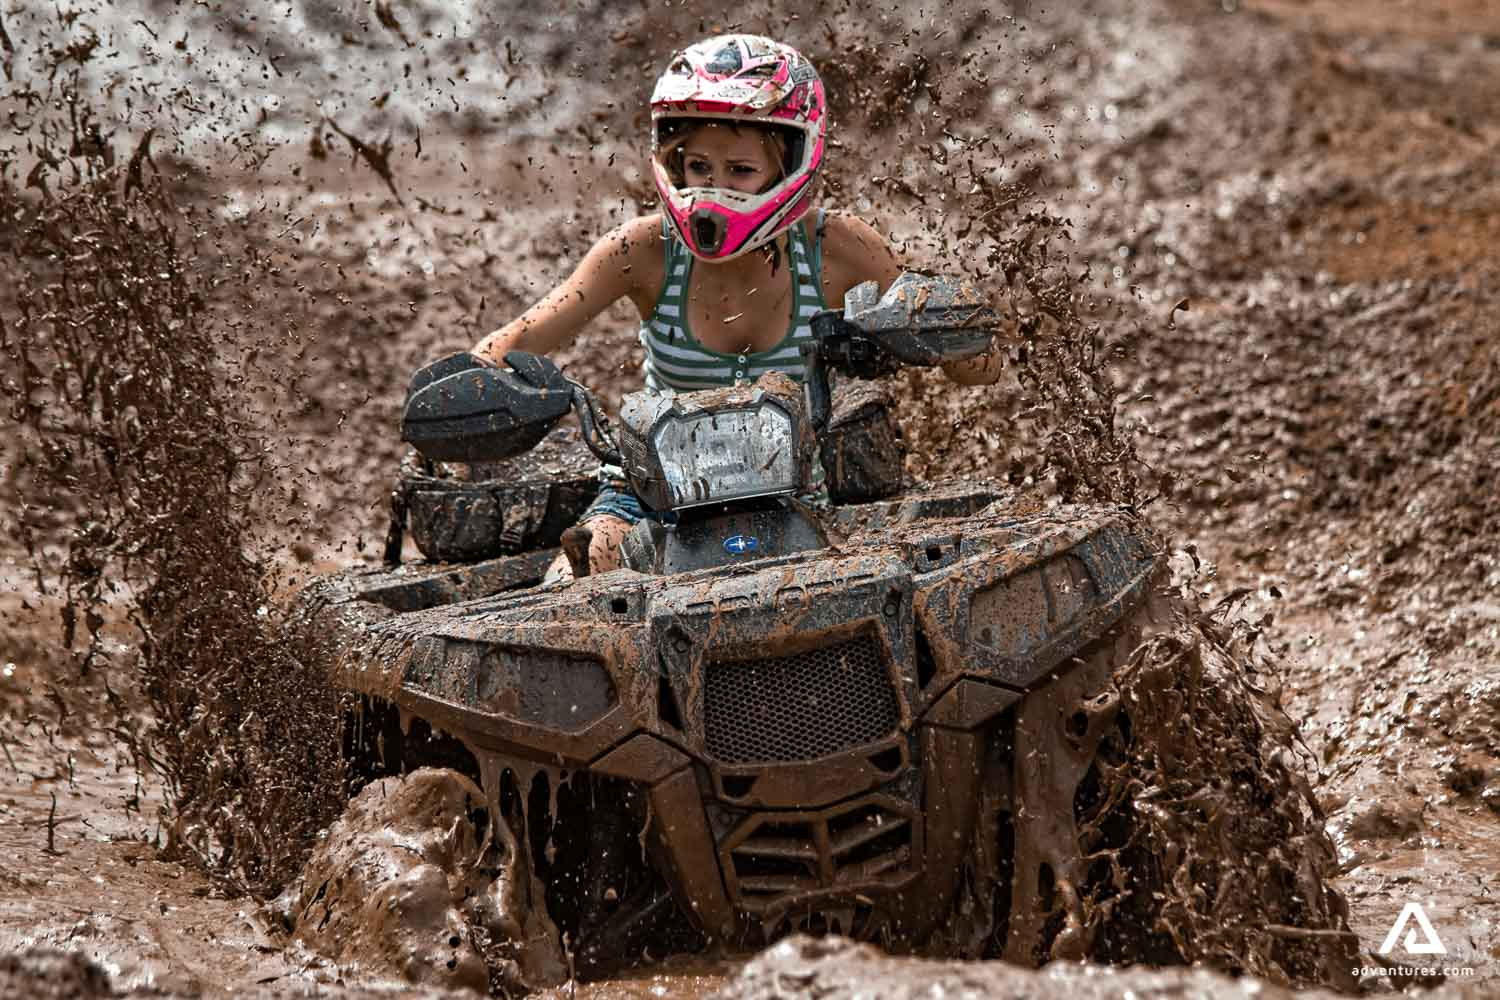 Girl riding quad bike in the mud